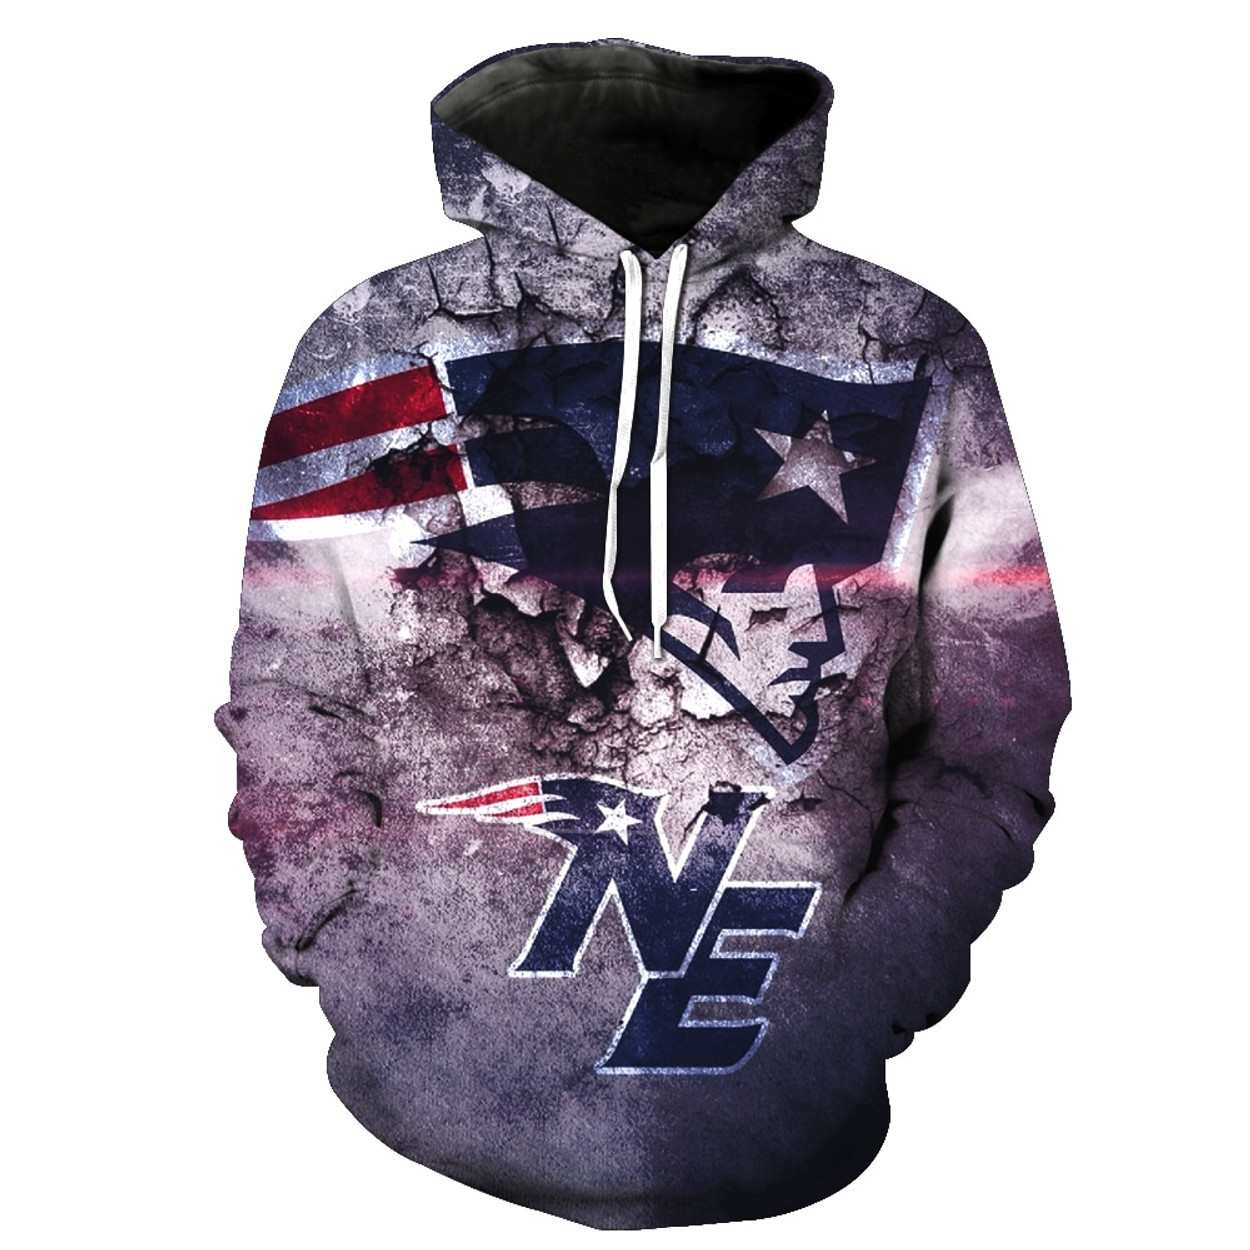 OFFICIALLY-LICENSED-N.F.L.NEW-ENGLAND-PATRIOTS-PULLOVER-POCKET ... ac9f6a705